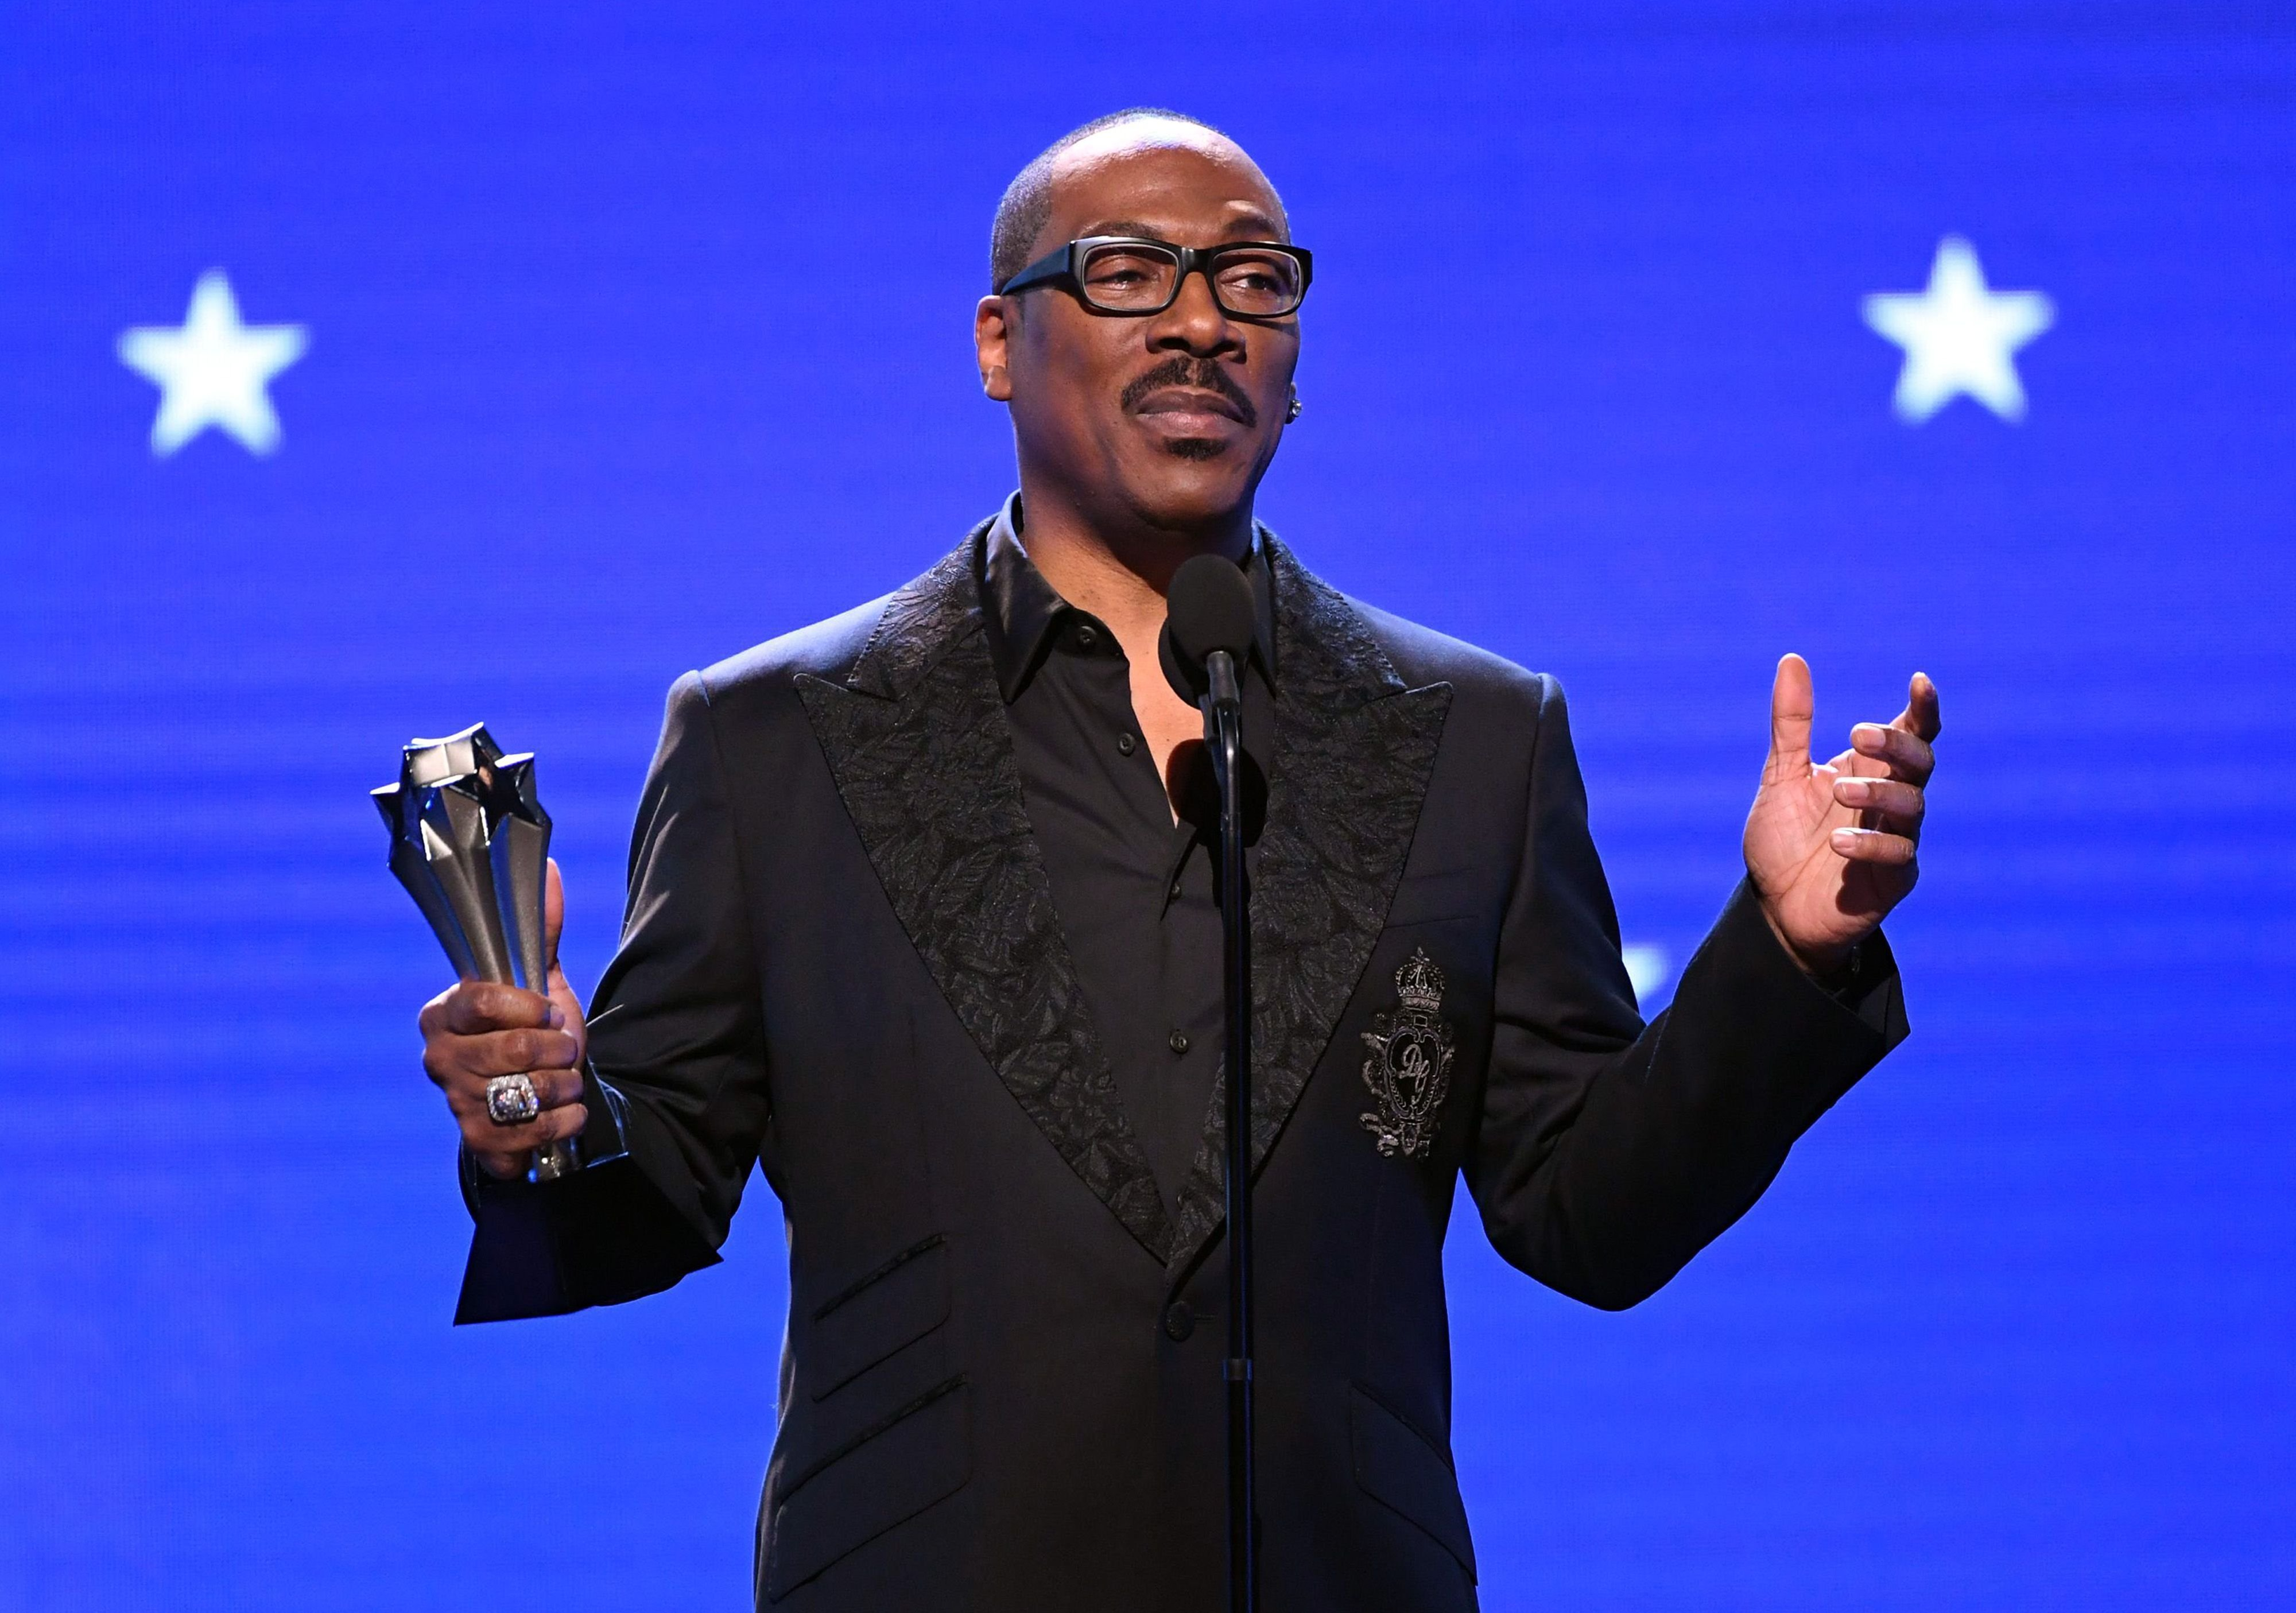 Eddie Murphy during the 25th Annual Critics' Choice Awards at Barker Hangar on January 12, 2020 in Santa Monica, California.   Source: Getty Images